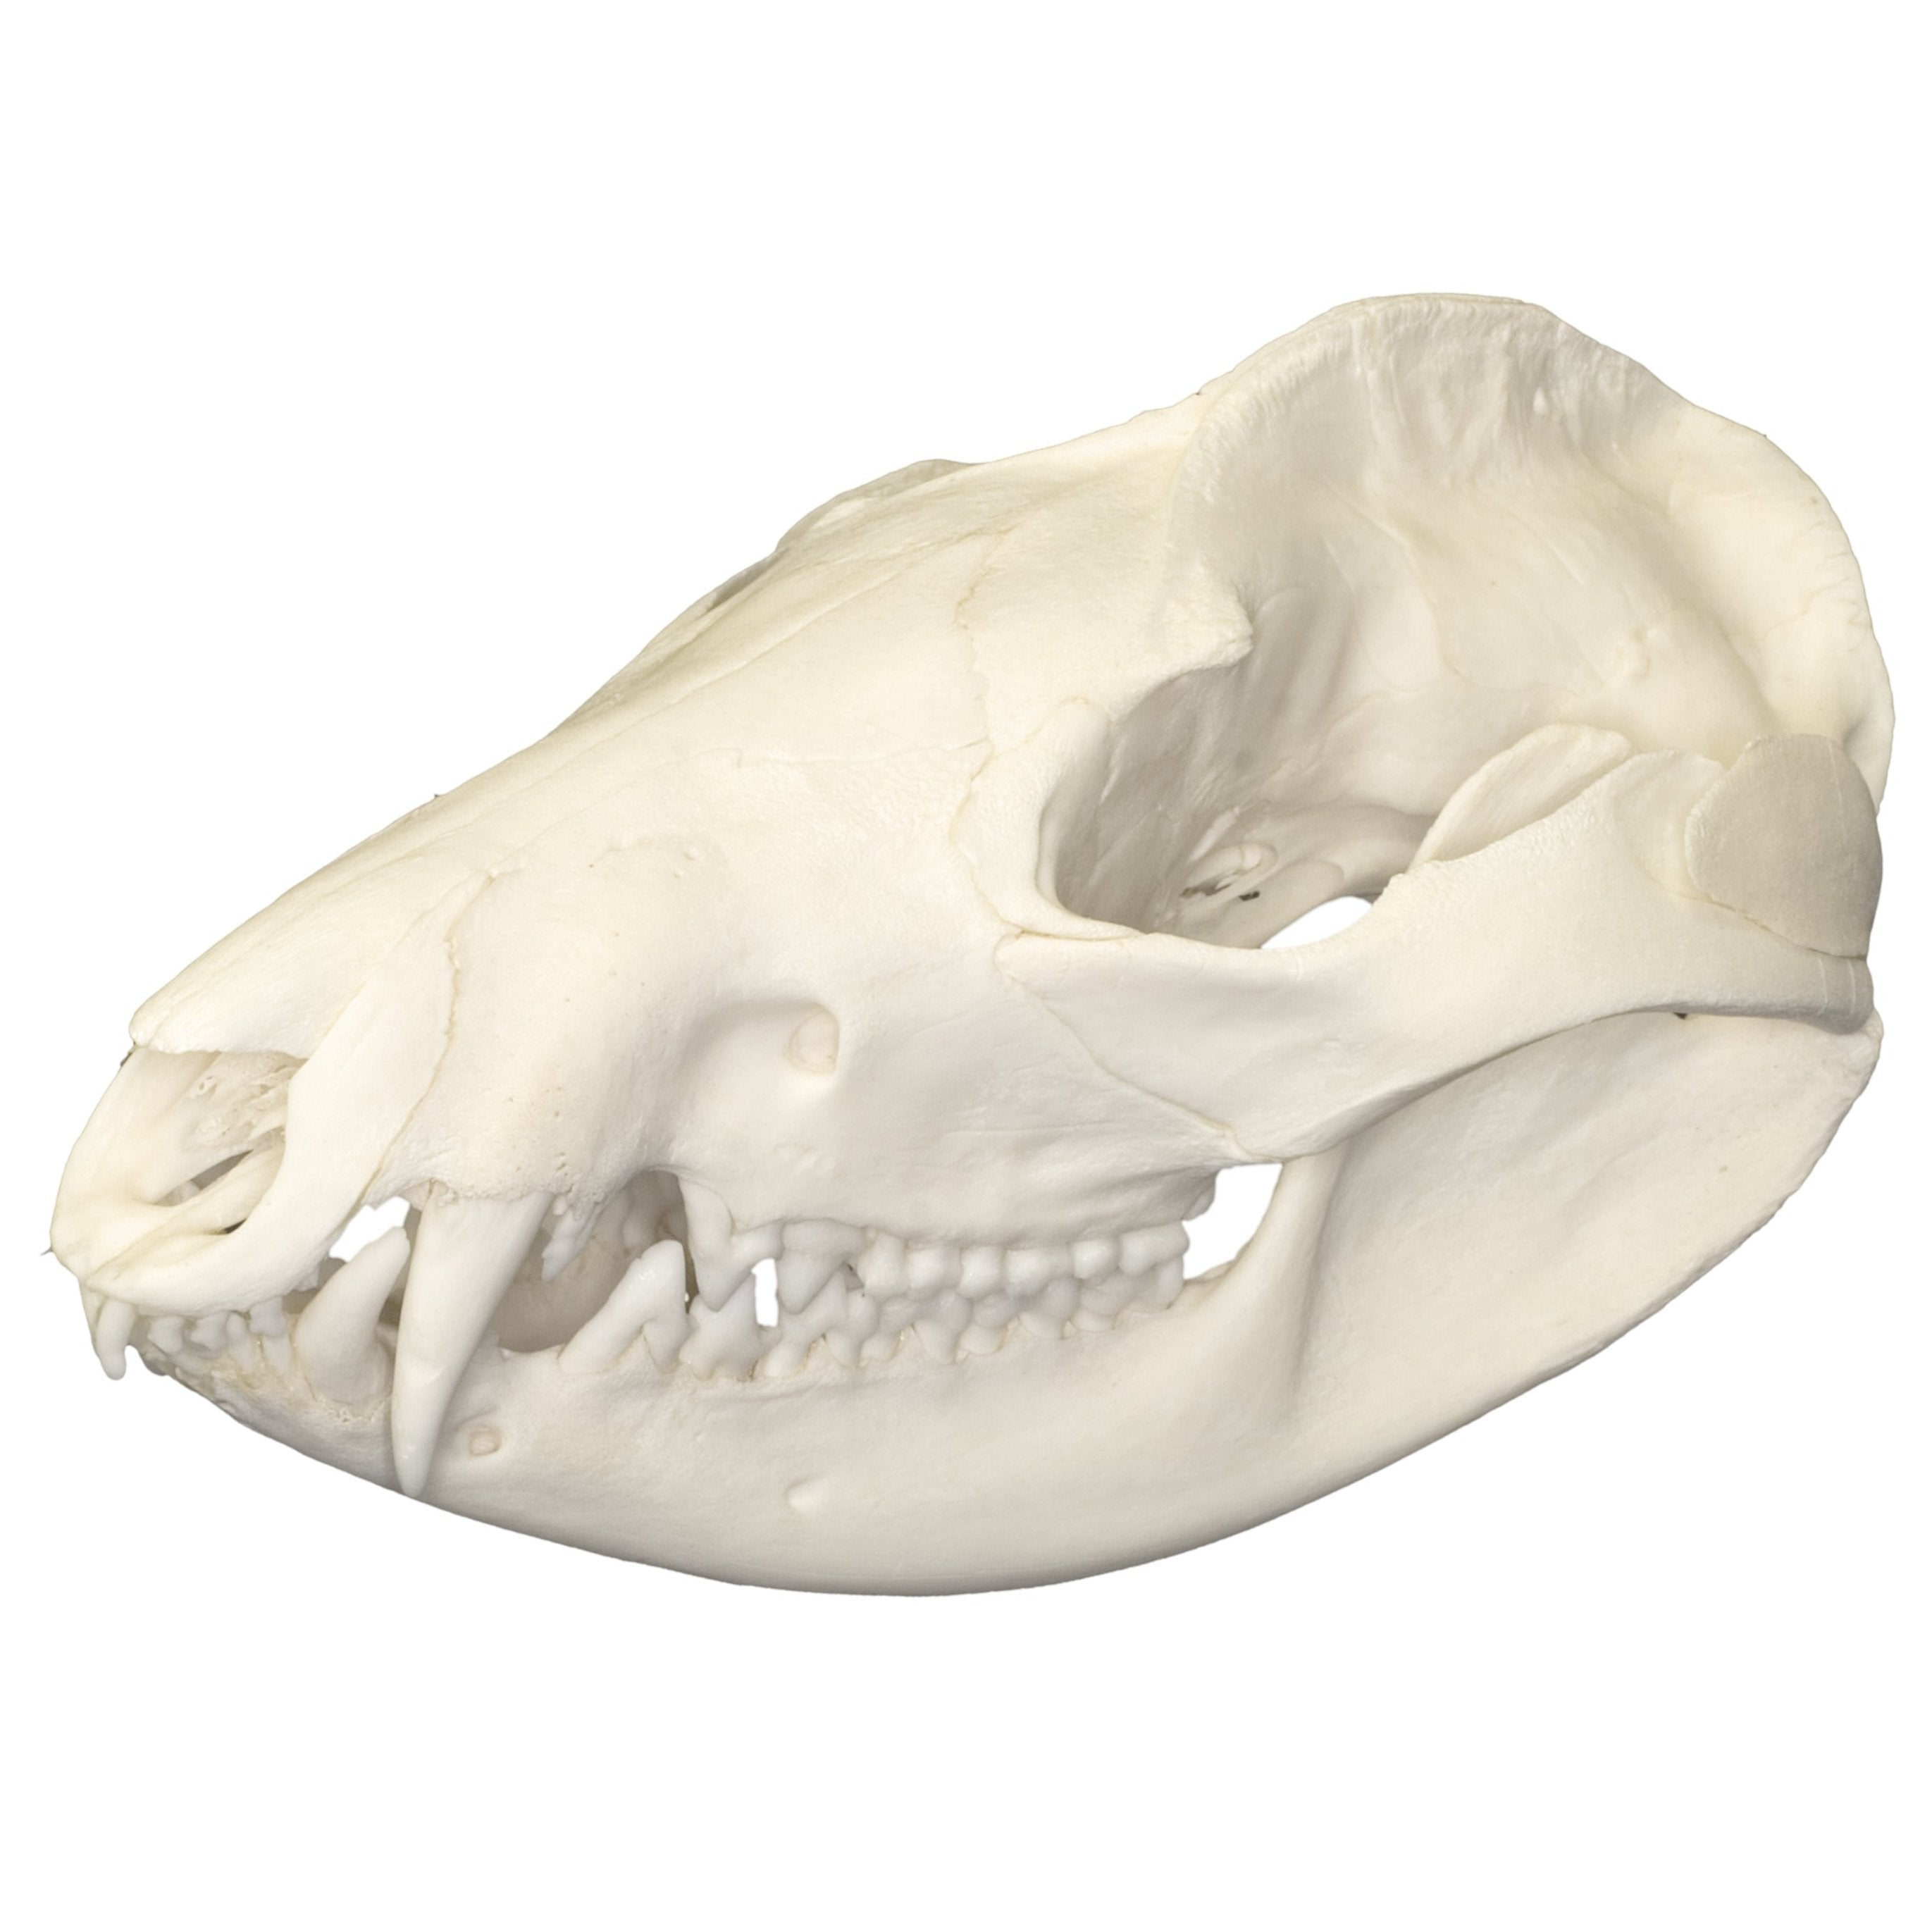 Real American Opossum Skull For Sale – Skulls Unlimited ...